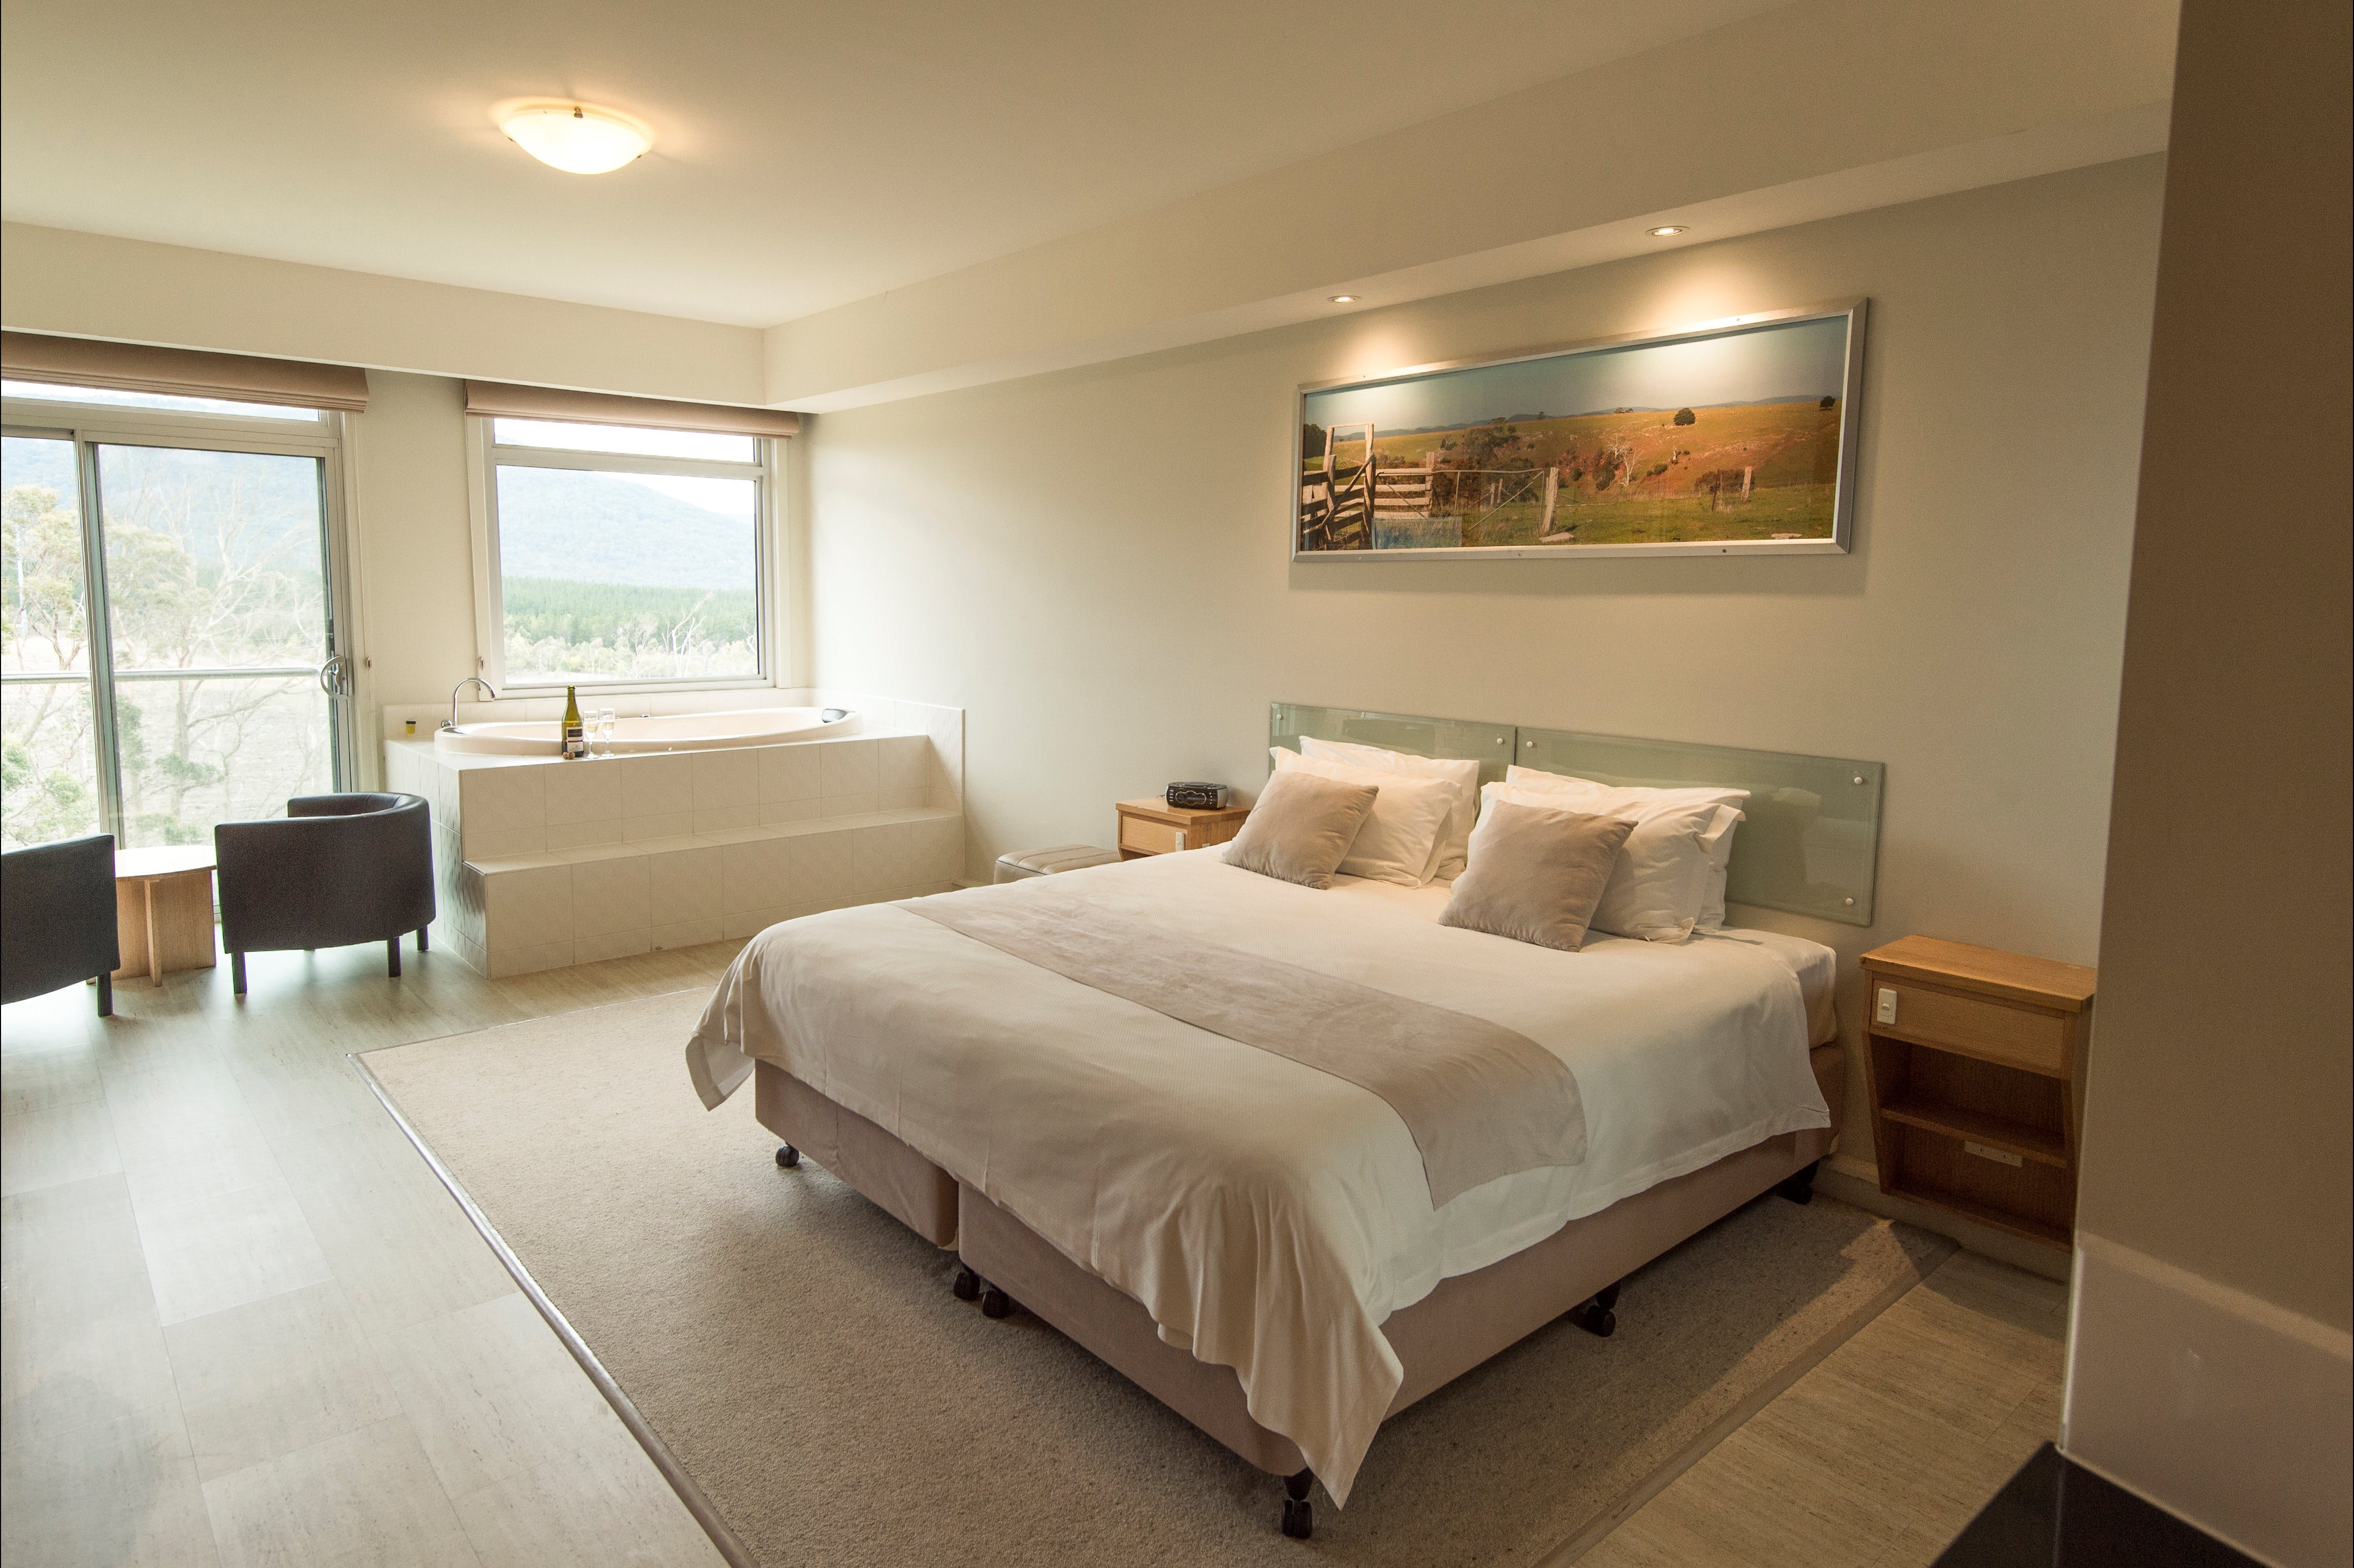 Macedon Ranges Hotel  Spa - Accommodation in Surfers Paradise